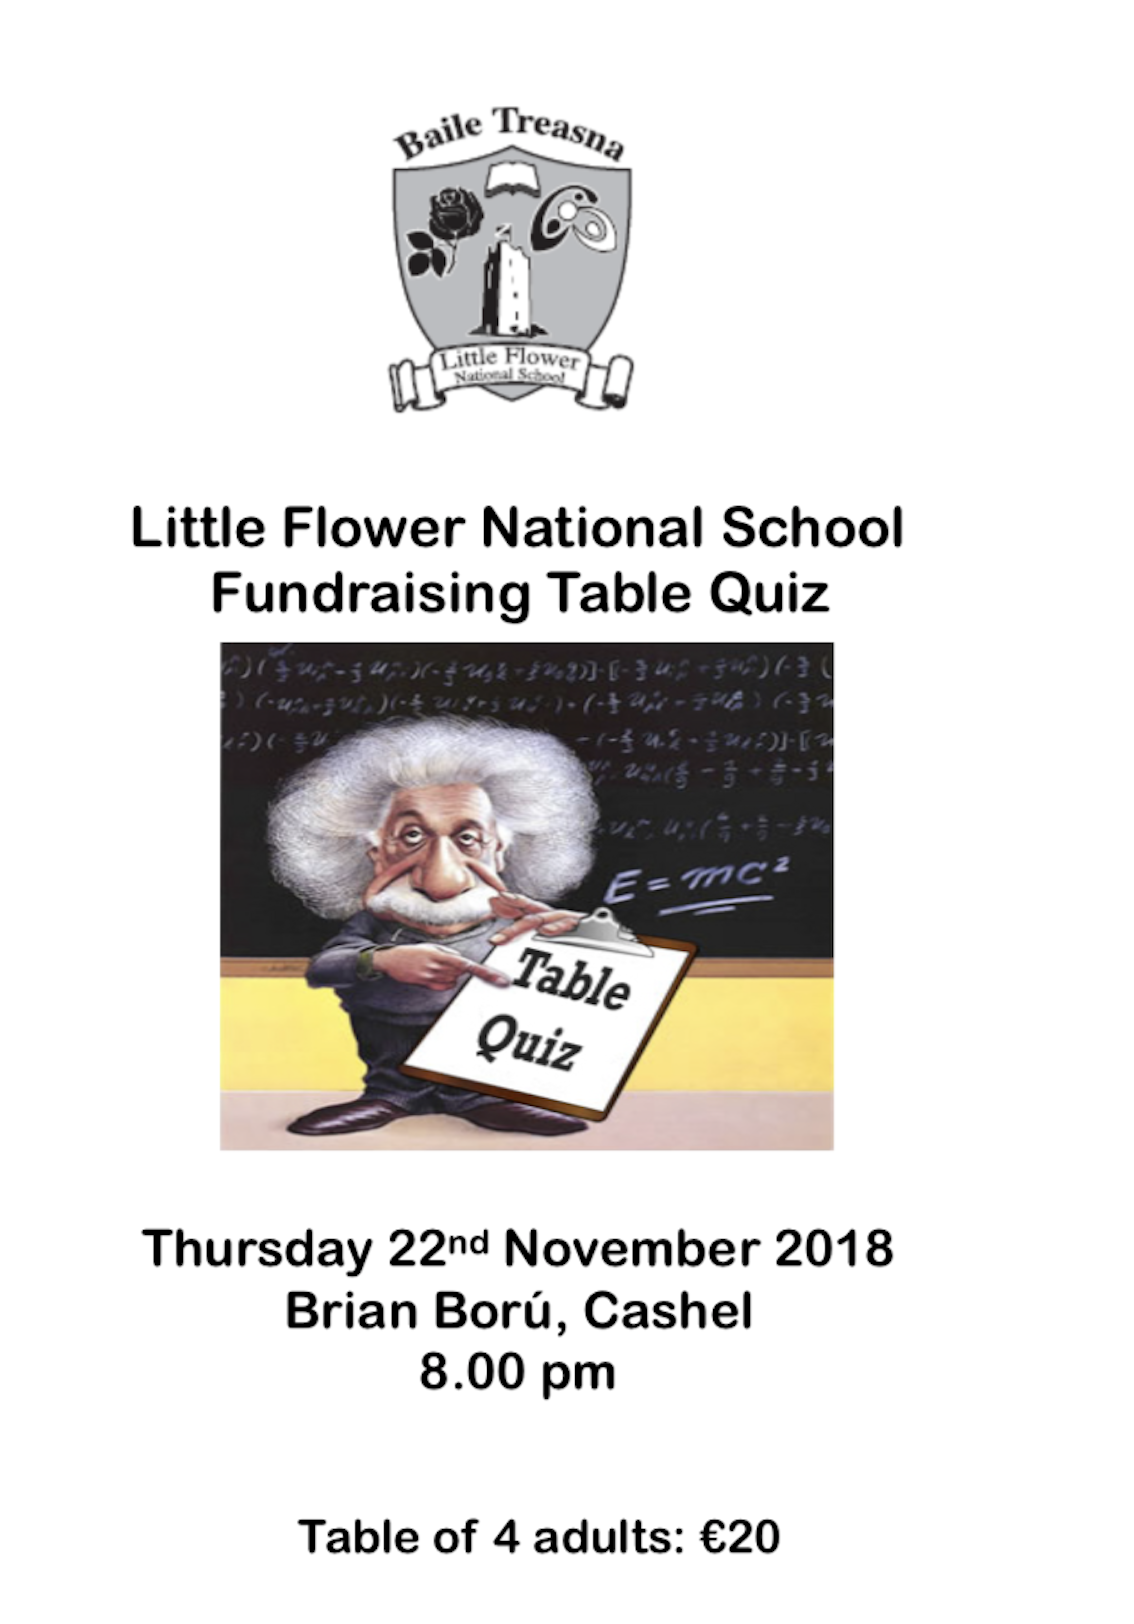 Little Flower National School Fundraising Table Quiz.